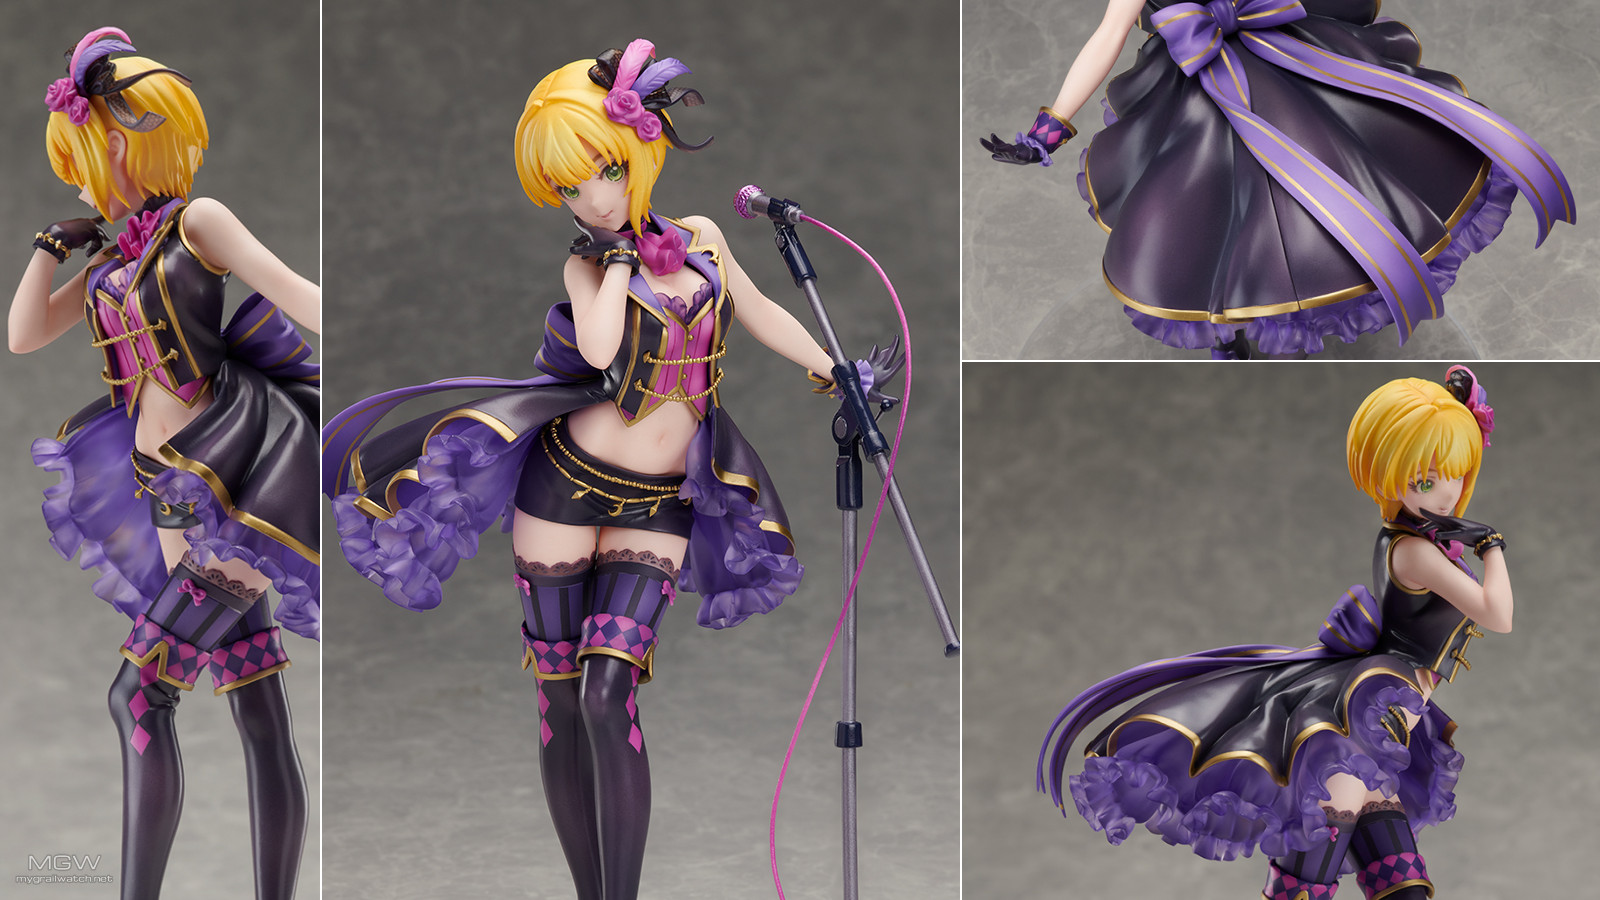 Miyamoto Frederica Tulip Ver. by Licorne from THE iDOLM@STER CINDERELLA GIRLS